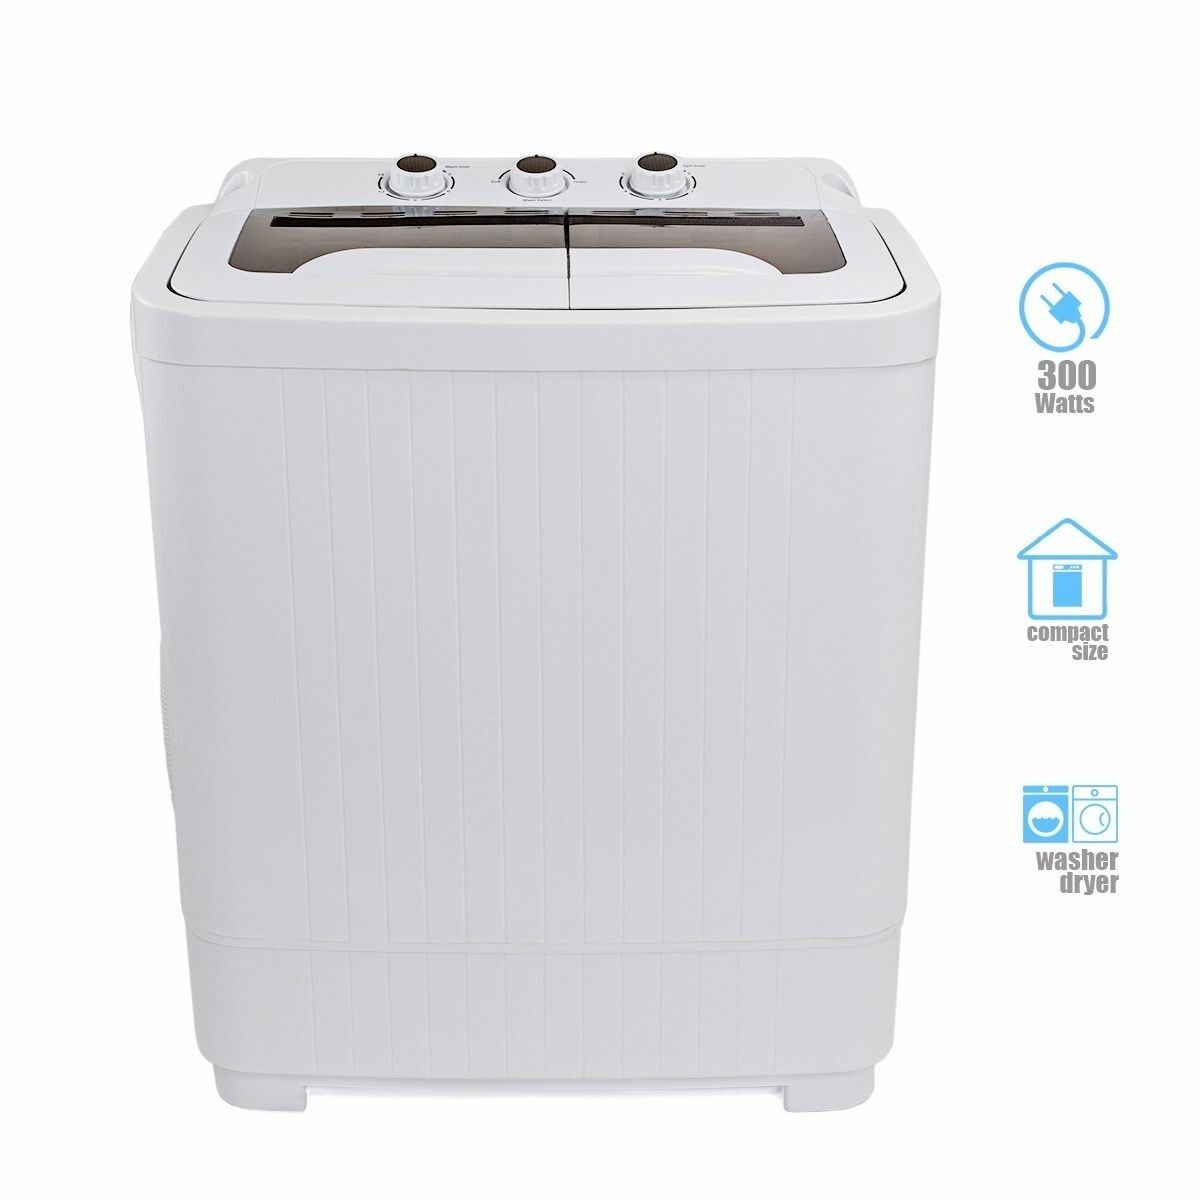 Portable MINI Washer Machines Compact 8  9LB Washing Spin Dryer Laundry RV Dorm  eBay